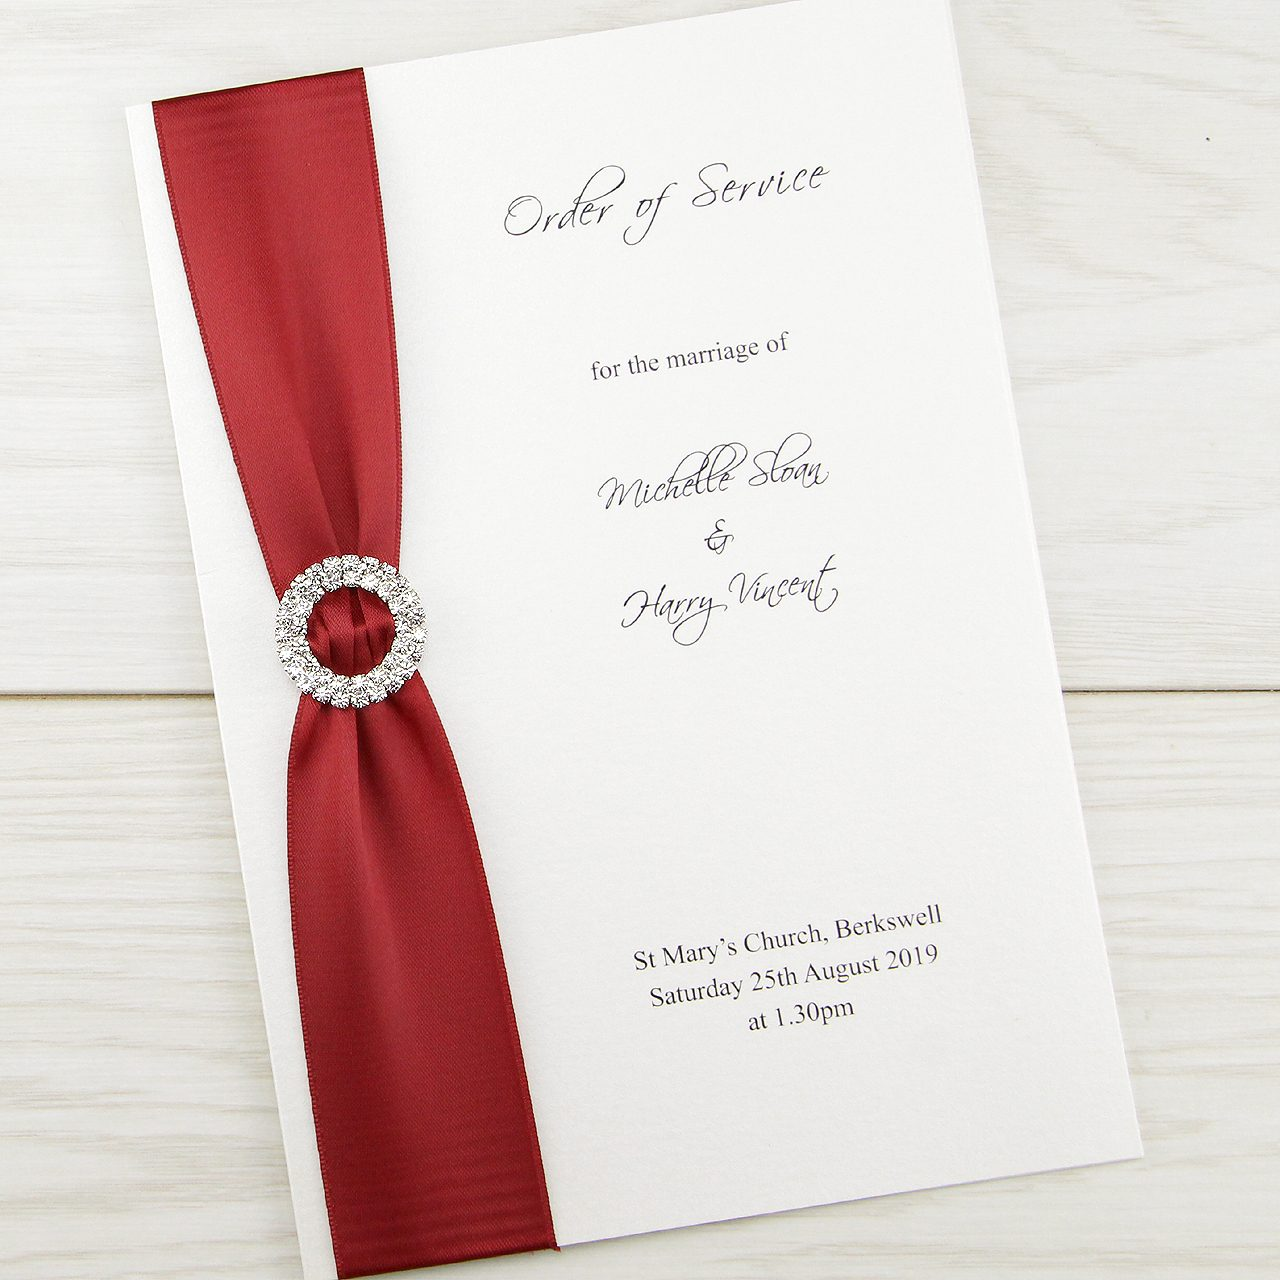 Double Diamante Order of Service | Pure Invitation Wedding Invites